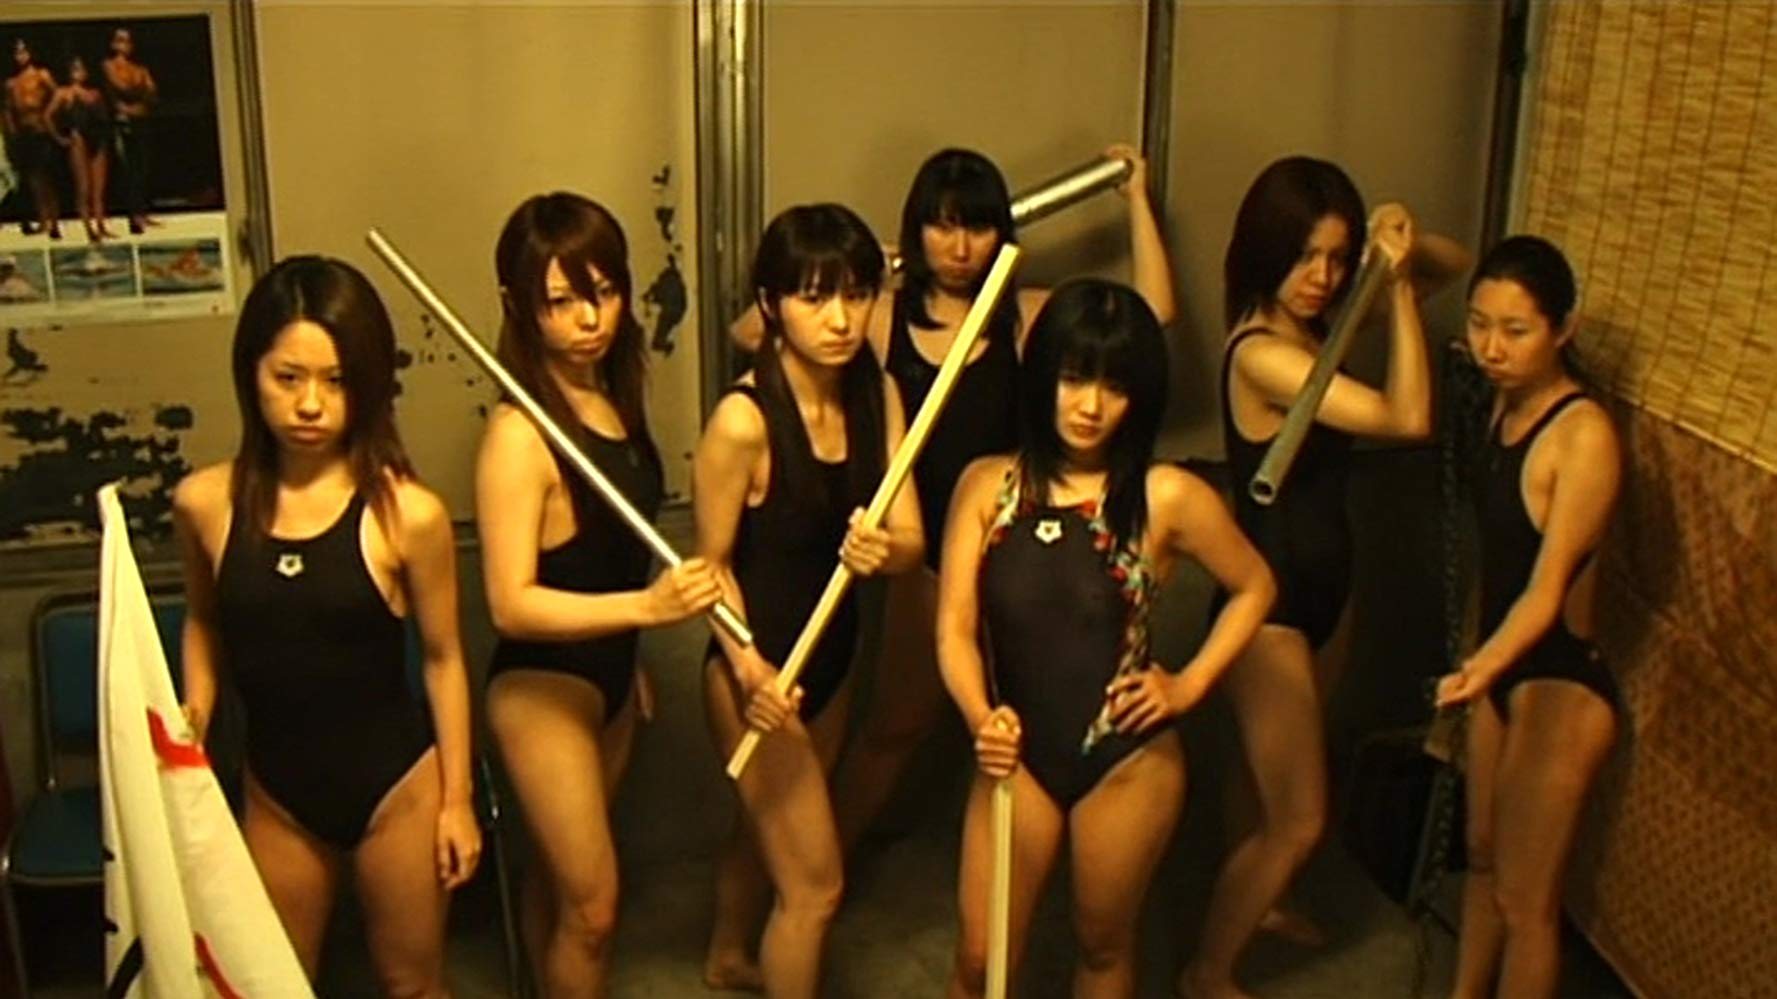 Pelicula Porno Majorettes attack girls' swim team vs. the undead (2007) - moria